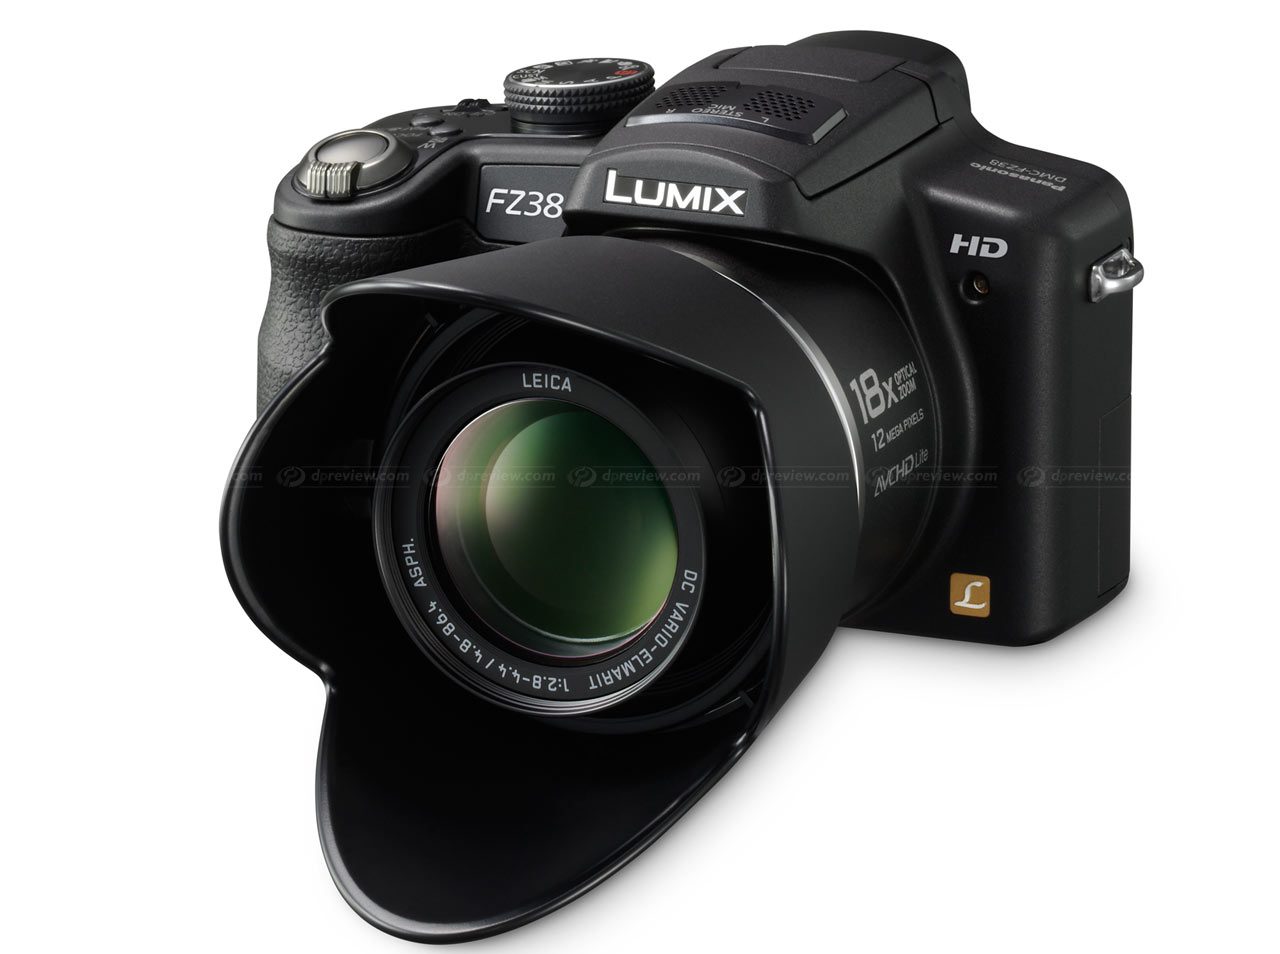 panasonic unveils lumix dmc fz35 fz38 super zoom digital rh dpreview com Panasonic Lumix Camera panasonic lumix dmc fz38 user manual